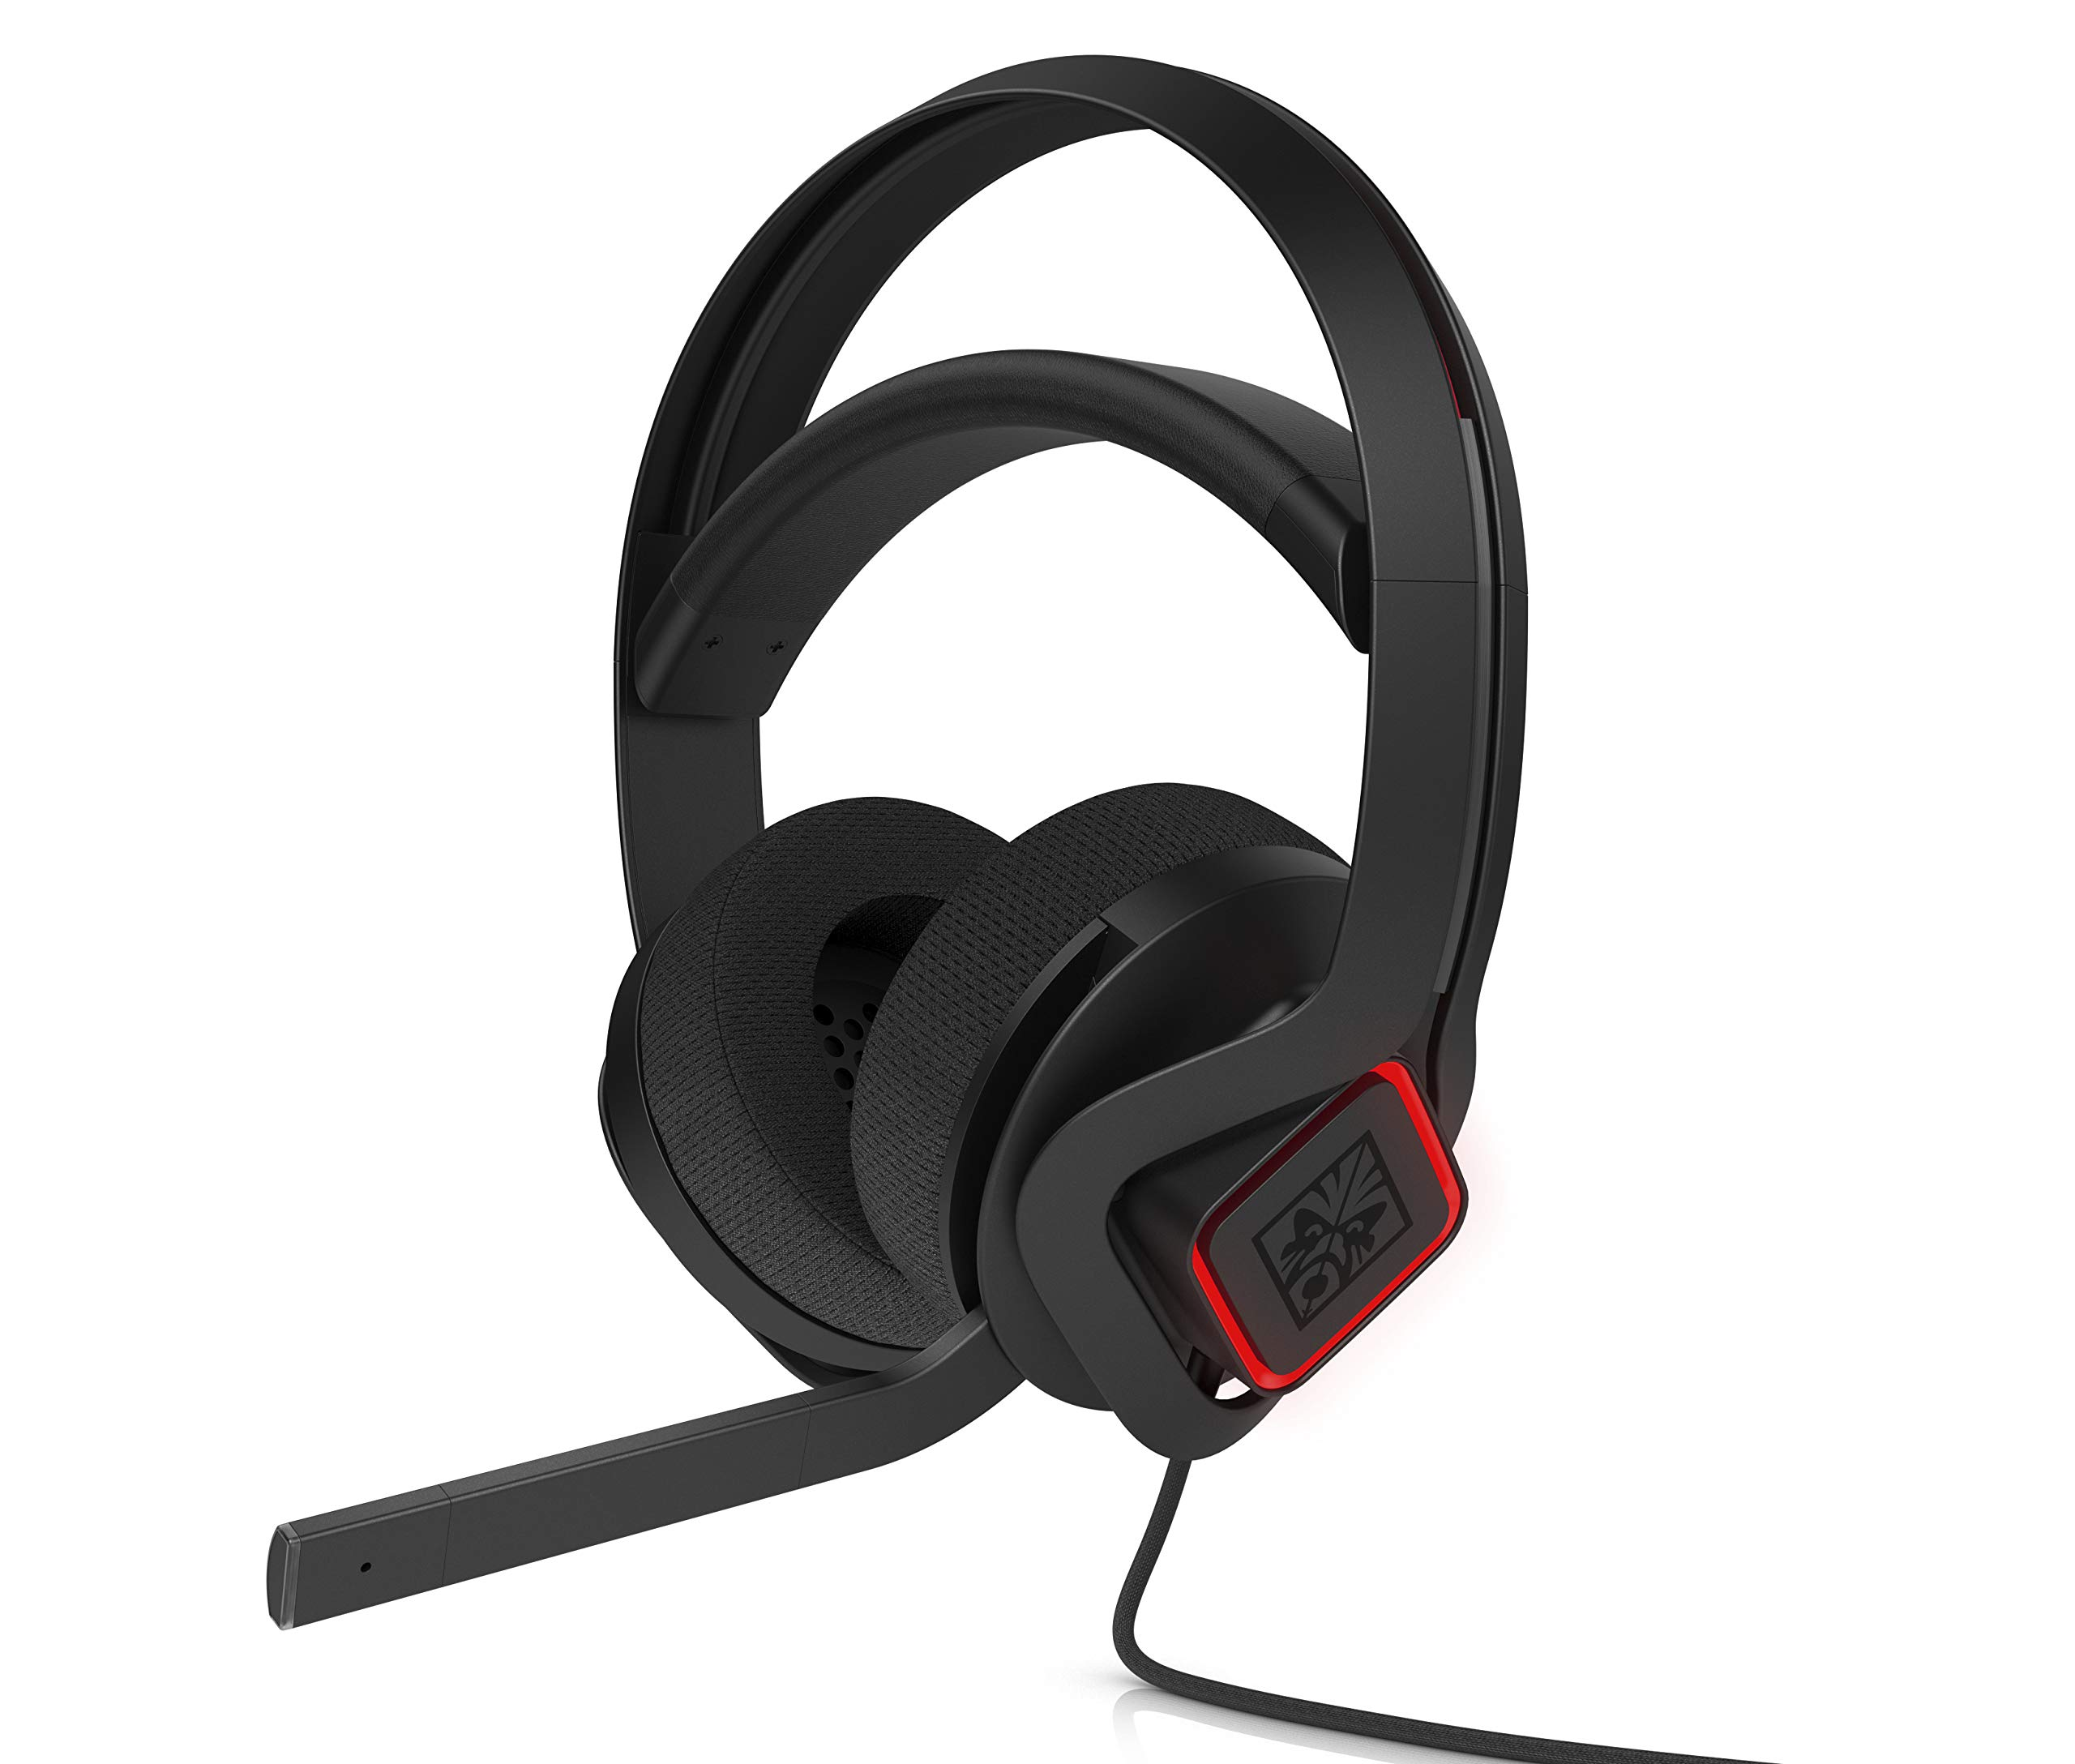 OMEN by HP Mindframe PC Gaming Headset with World's First FrostCap Active Cooling Technology (black) by HP